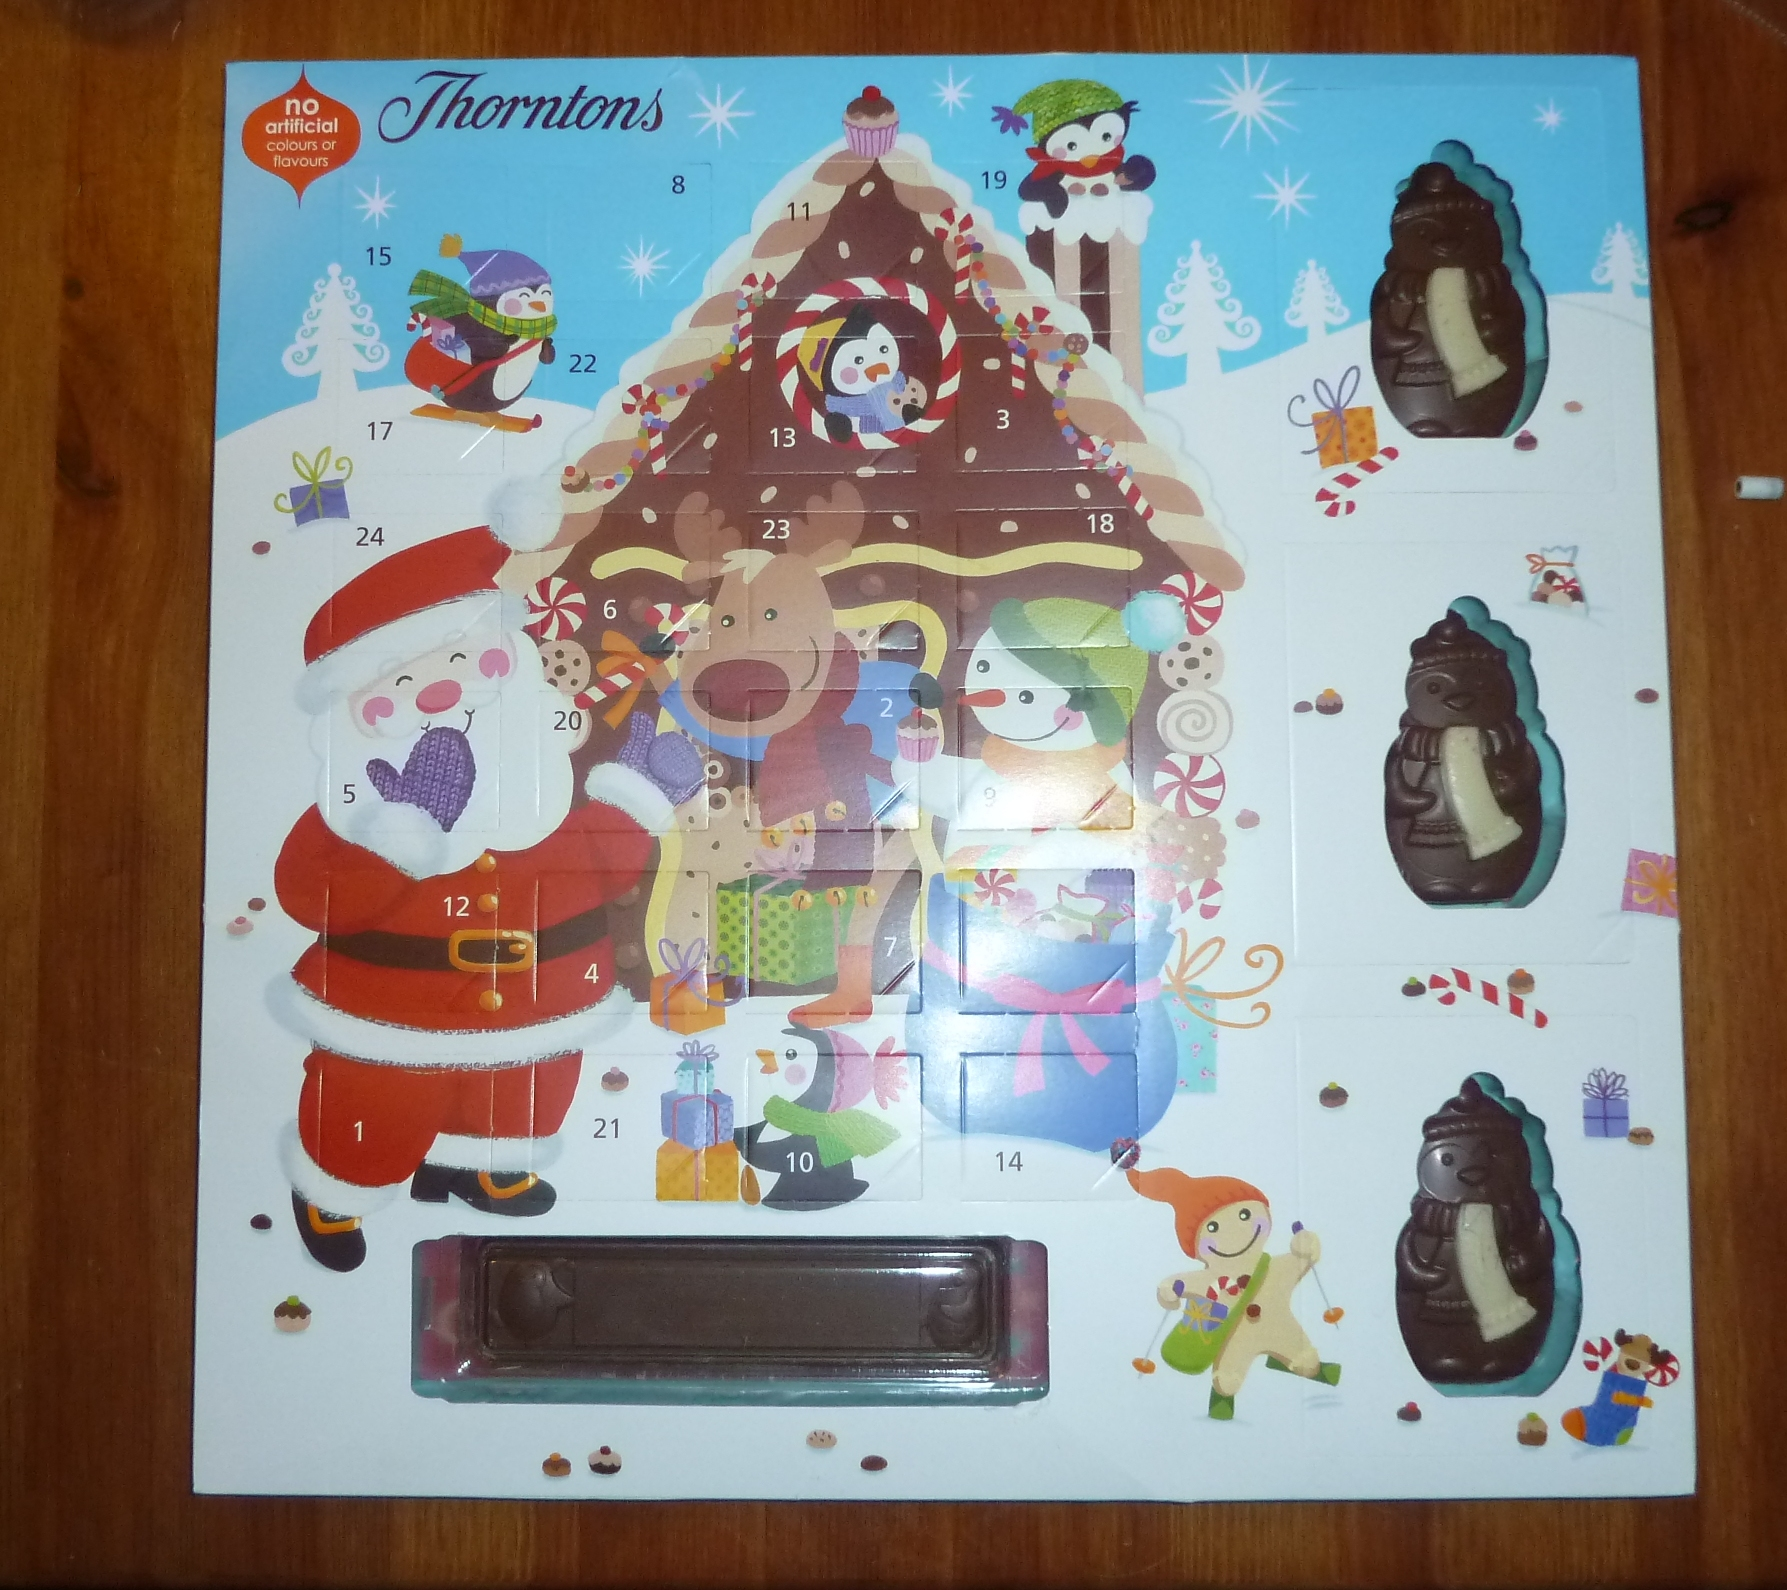 Advent Calendar 2016 Chocolate : Chocolate advent calendar from thorntons dragons and